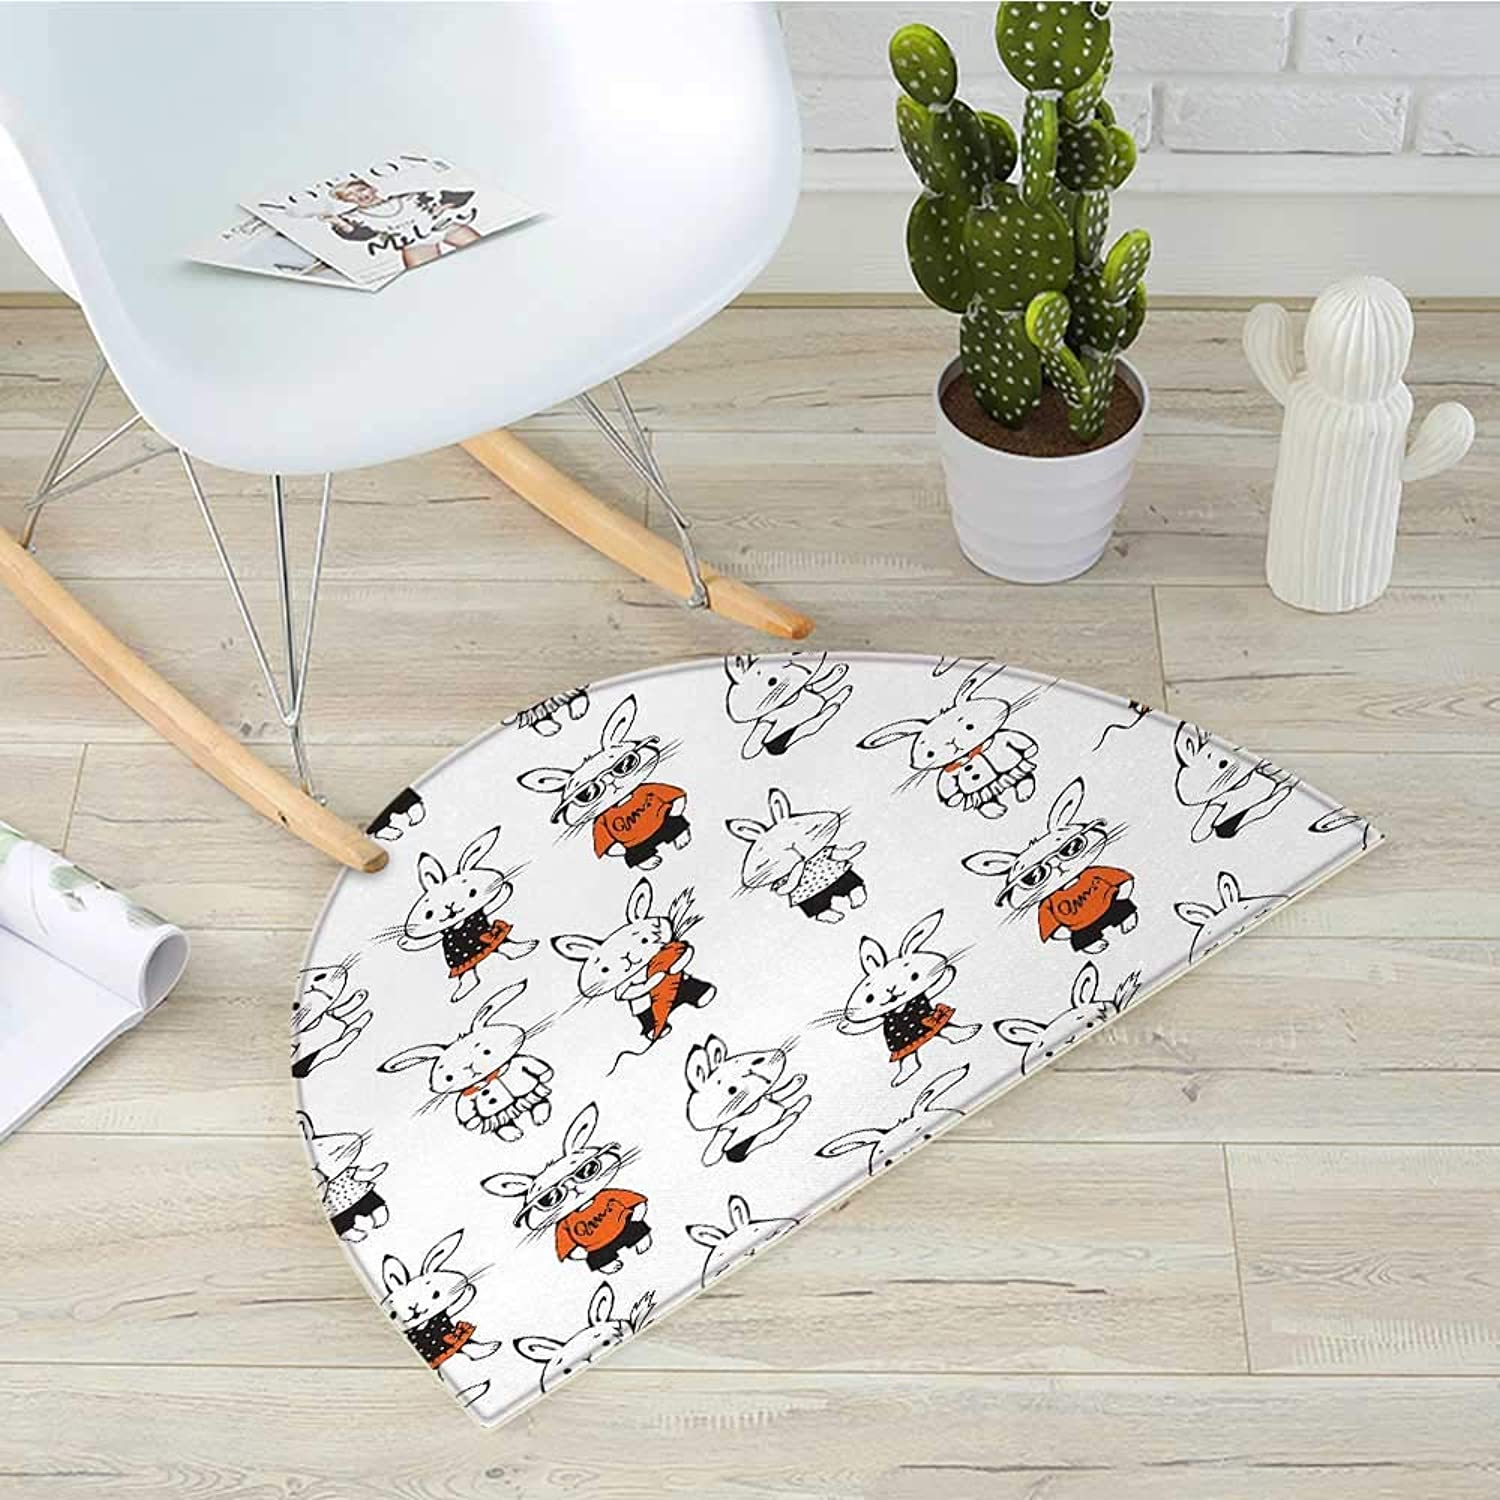 Funny Semicircular CushionCute Retro Bunny Rabbits with Costumes Jack Hare Funky Bunnies Carred Sketch Style Entry Door Mat H 35.4  xD 53.1  orange White